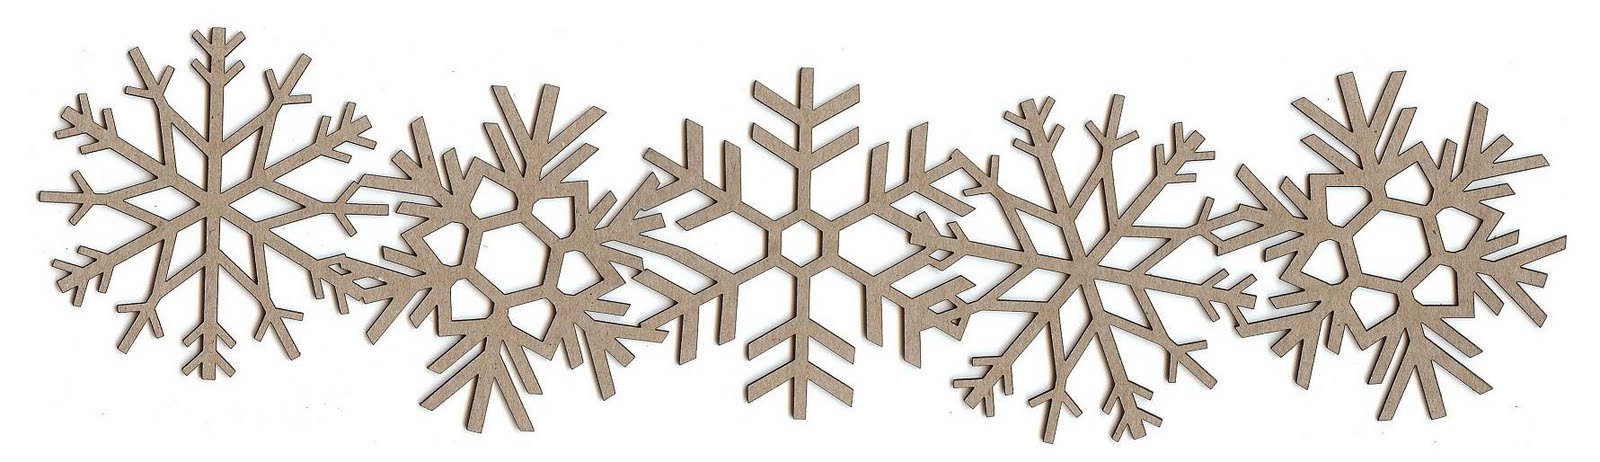 Lines clipart snowflake ClipartMonk clipart border Displaying image